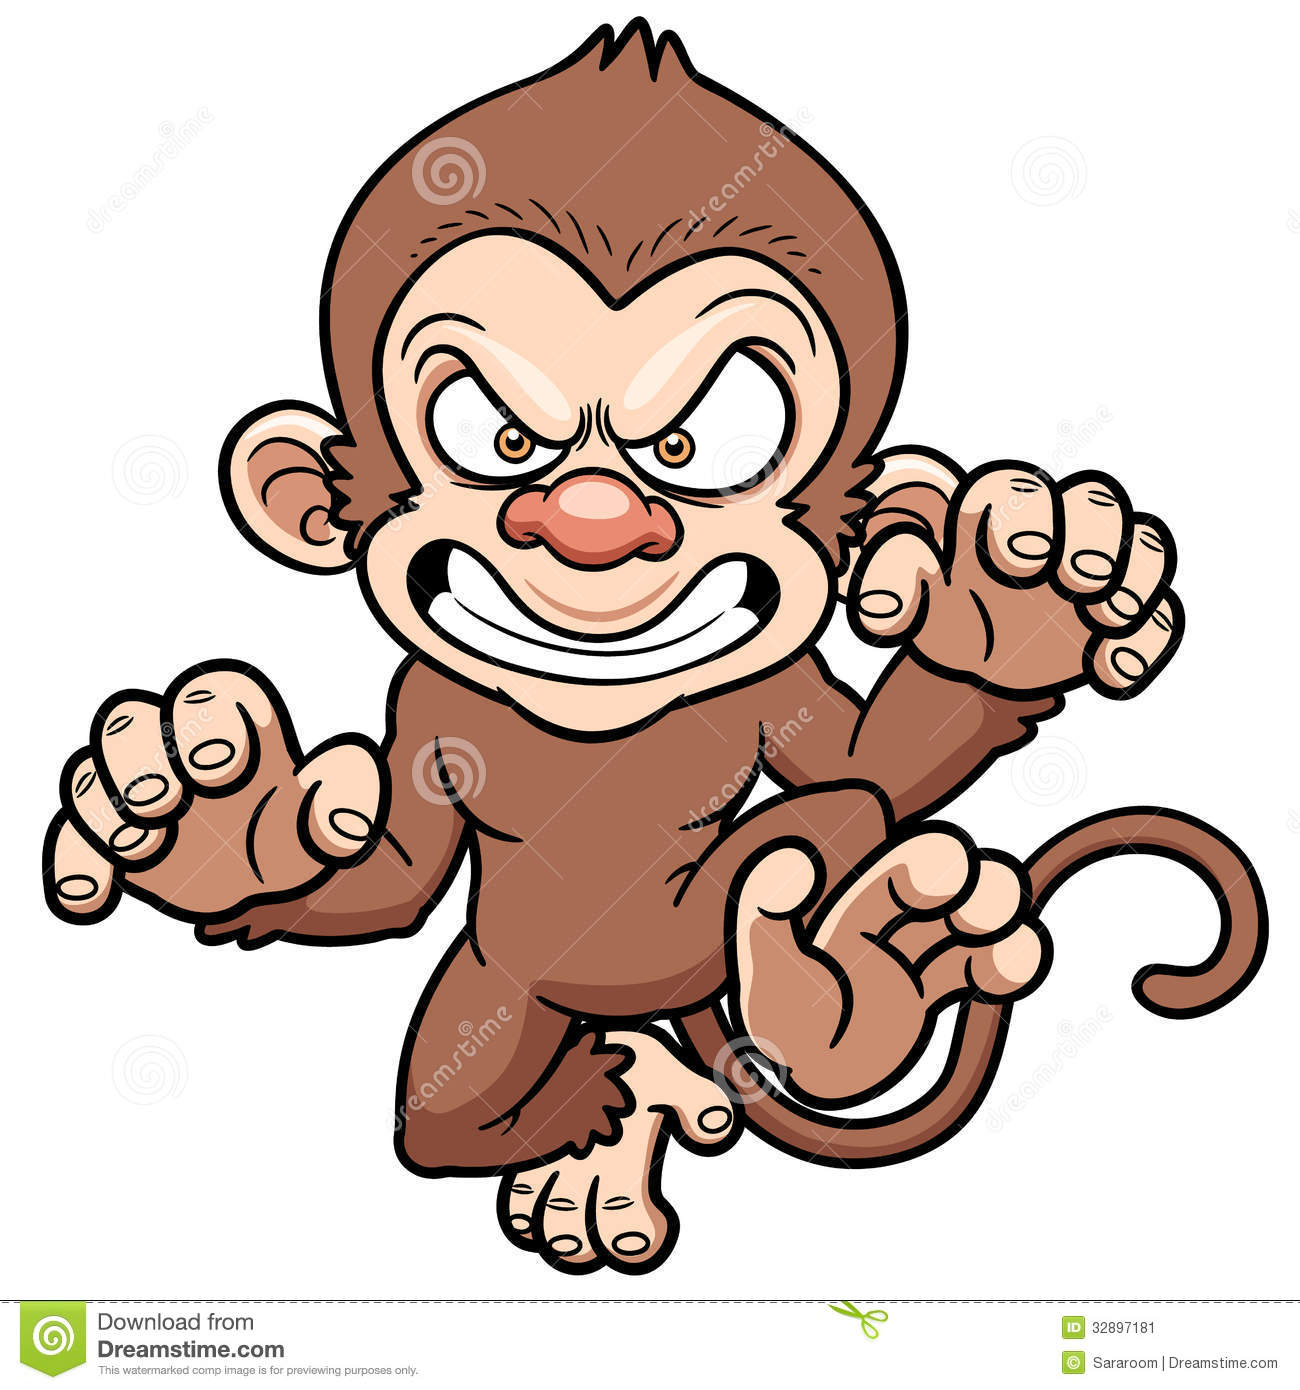 monkey cartoon wallpaper - photo #26